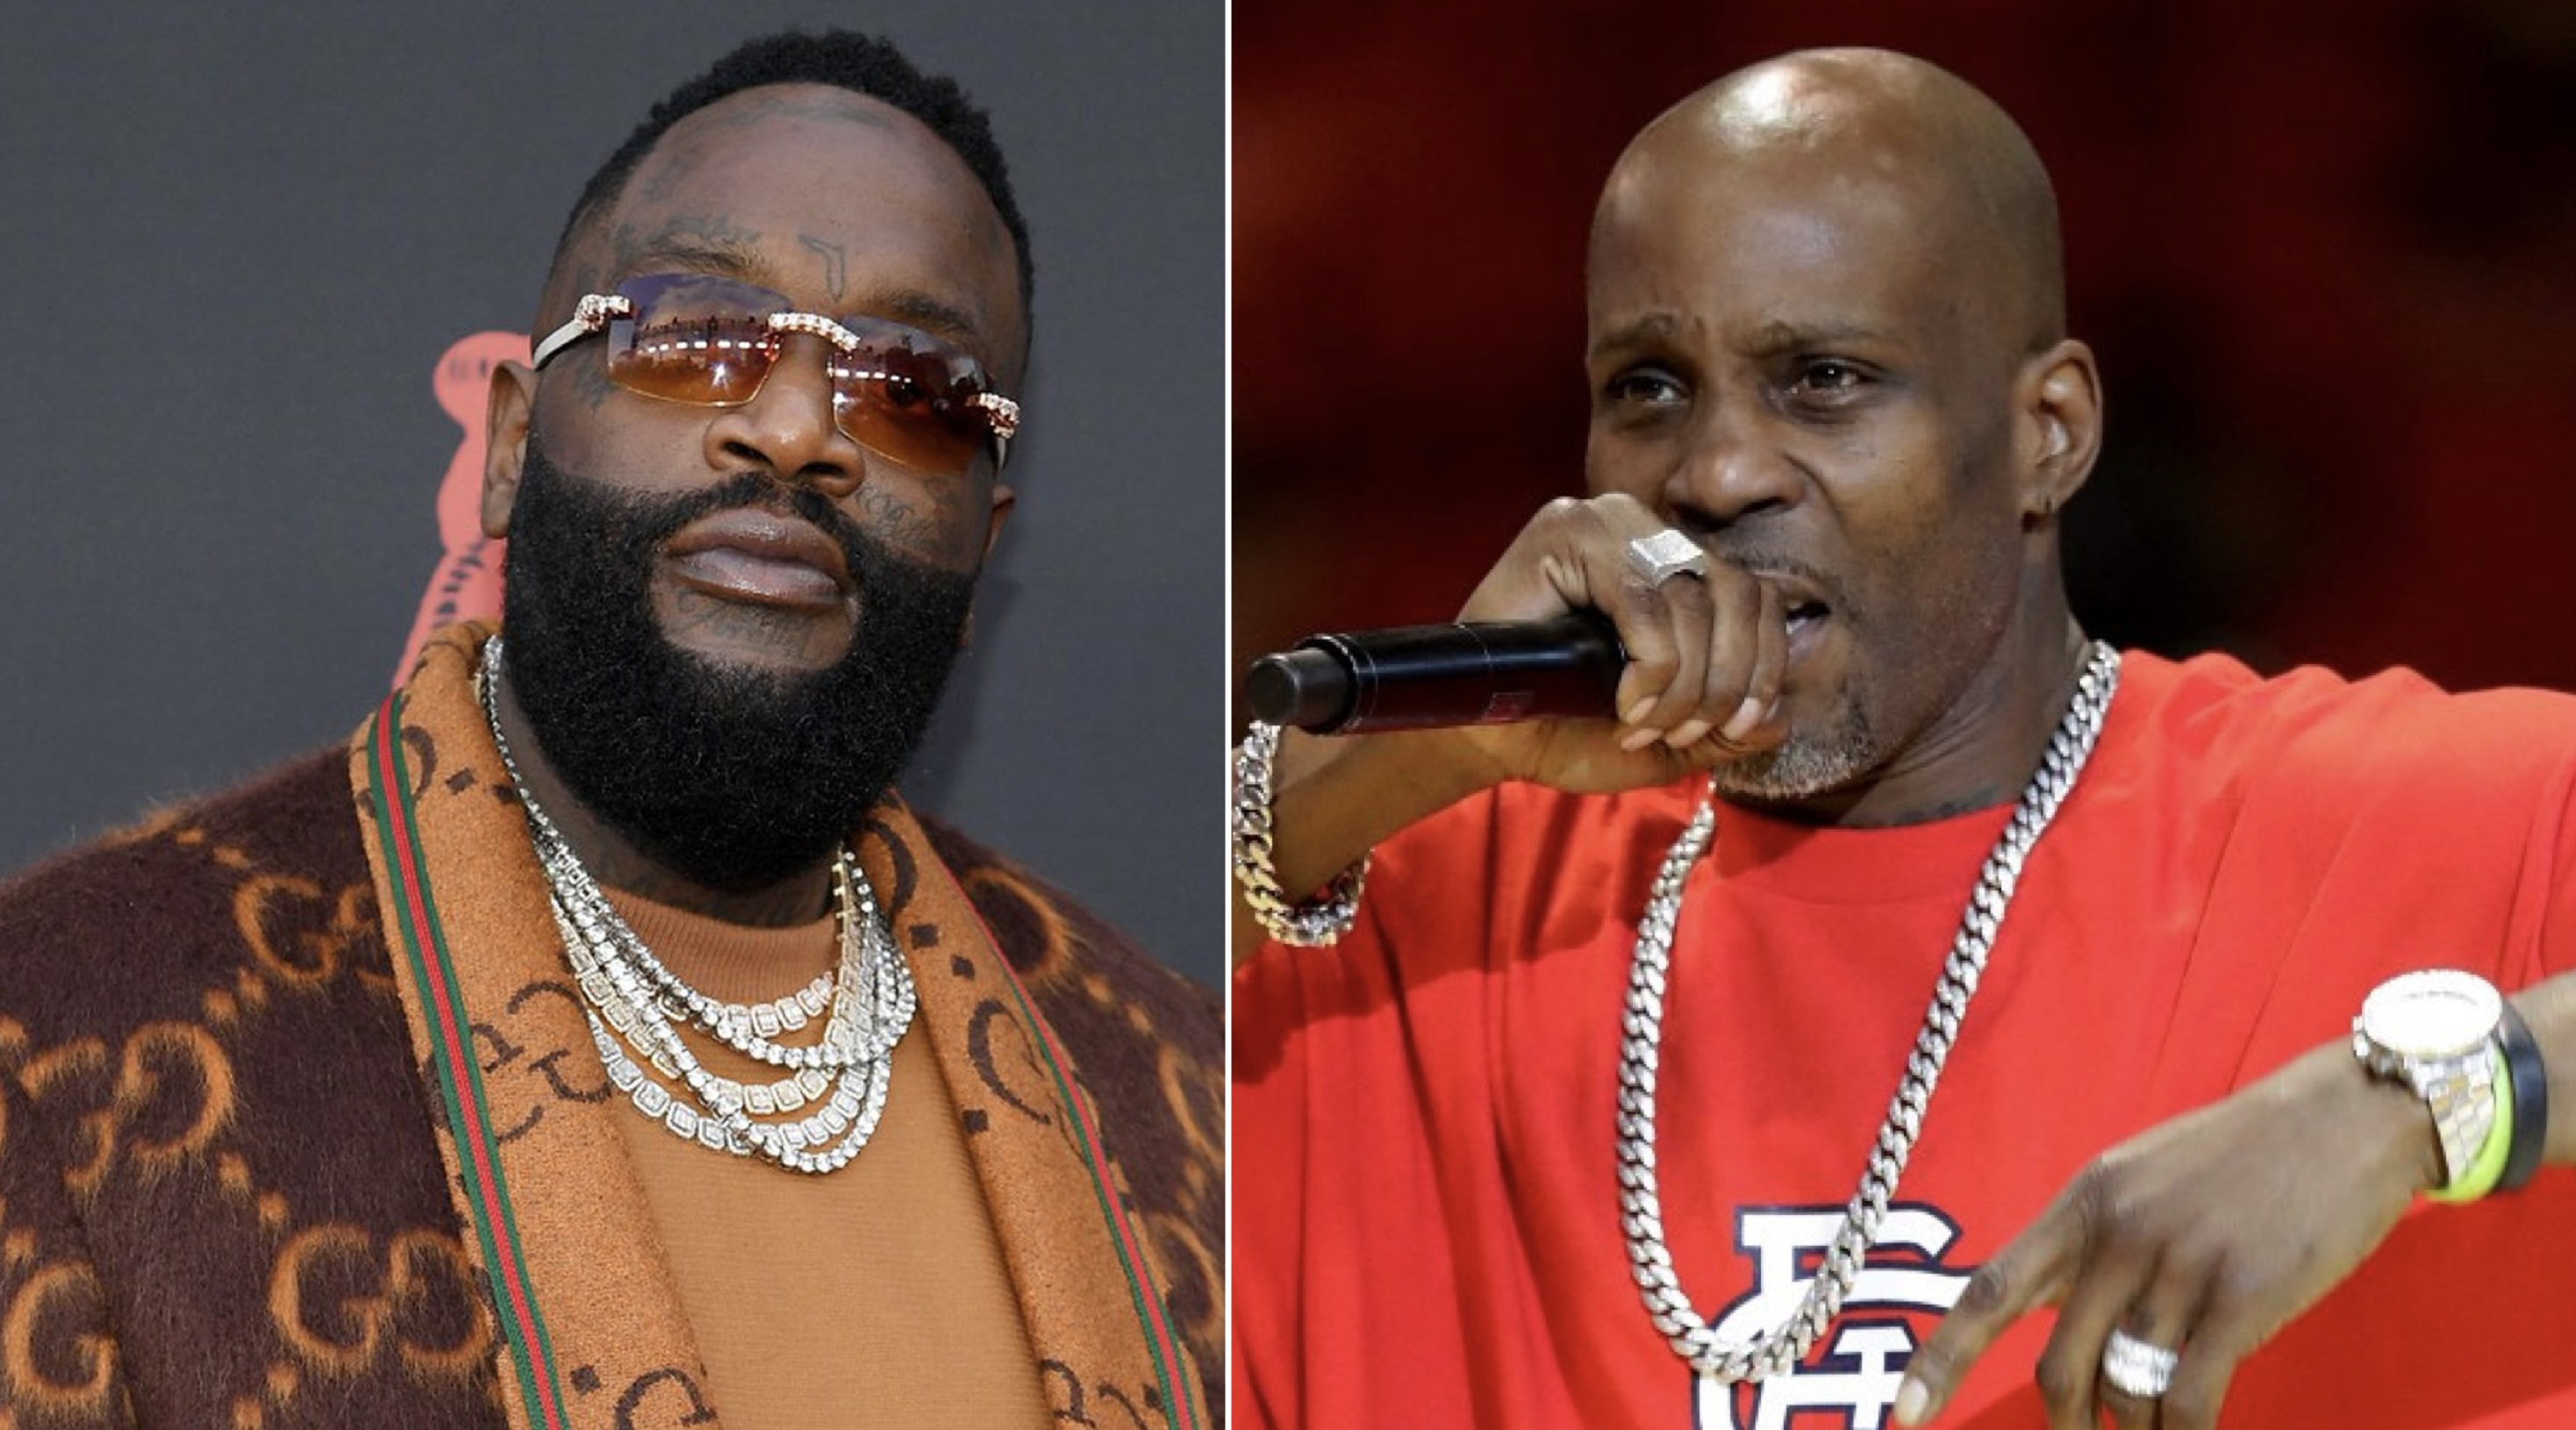 Rick Ross and DMX